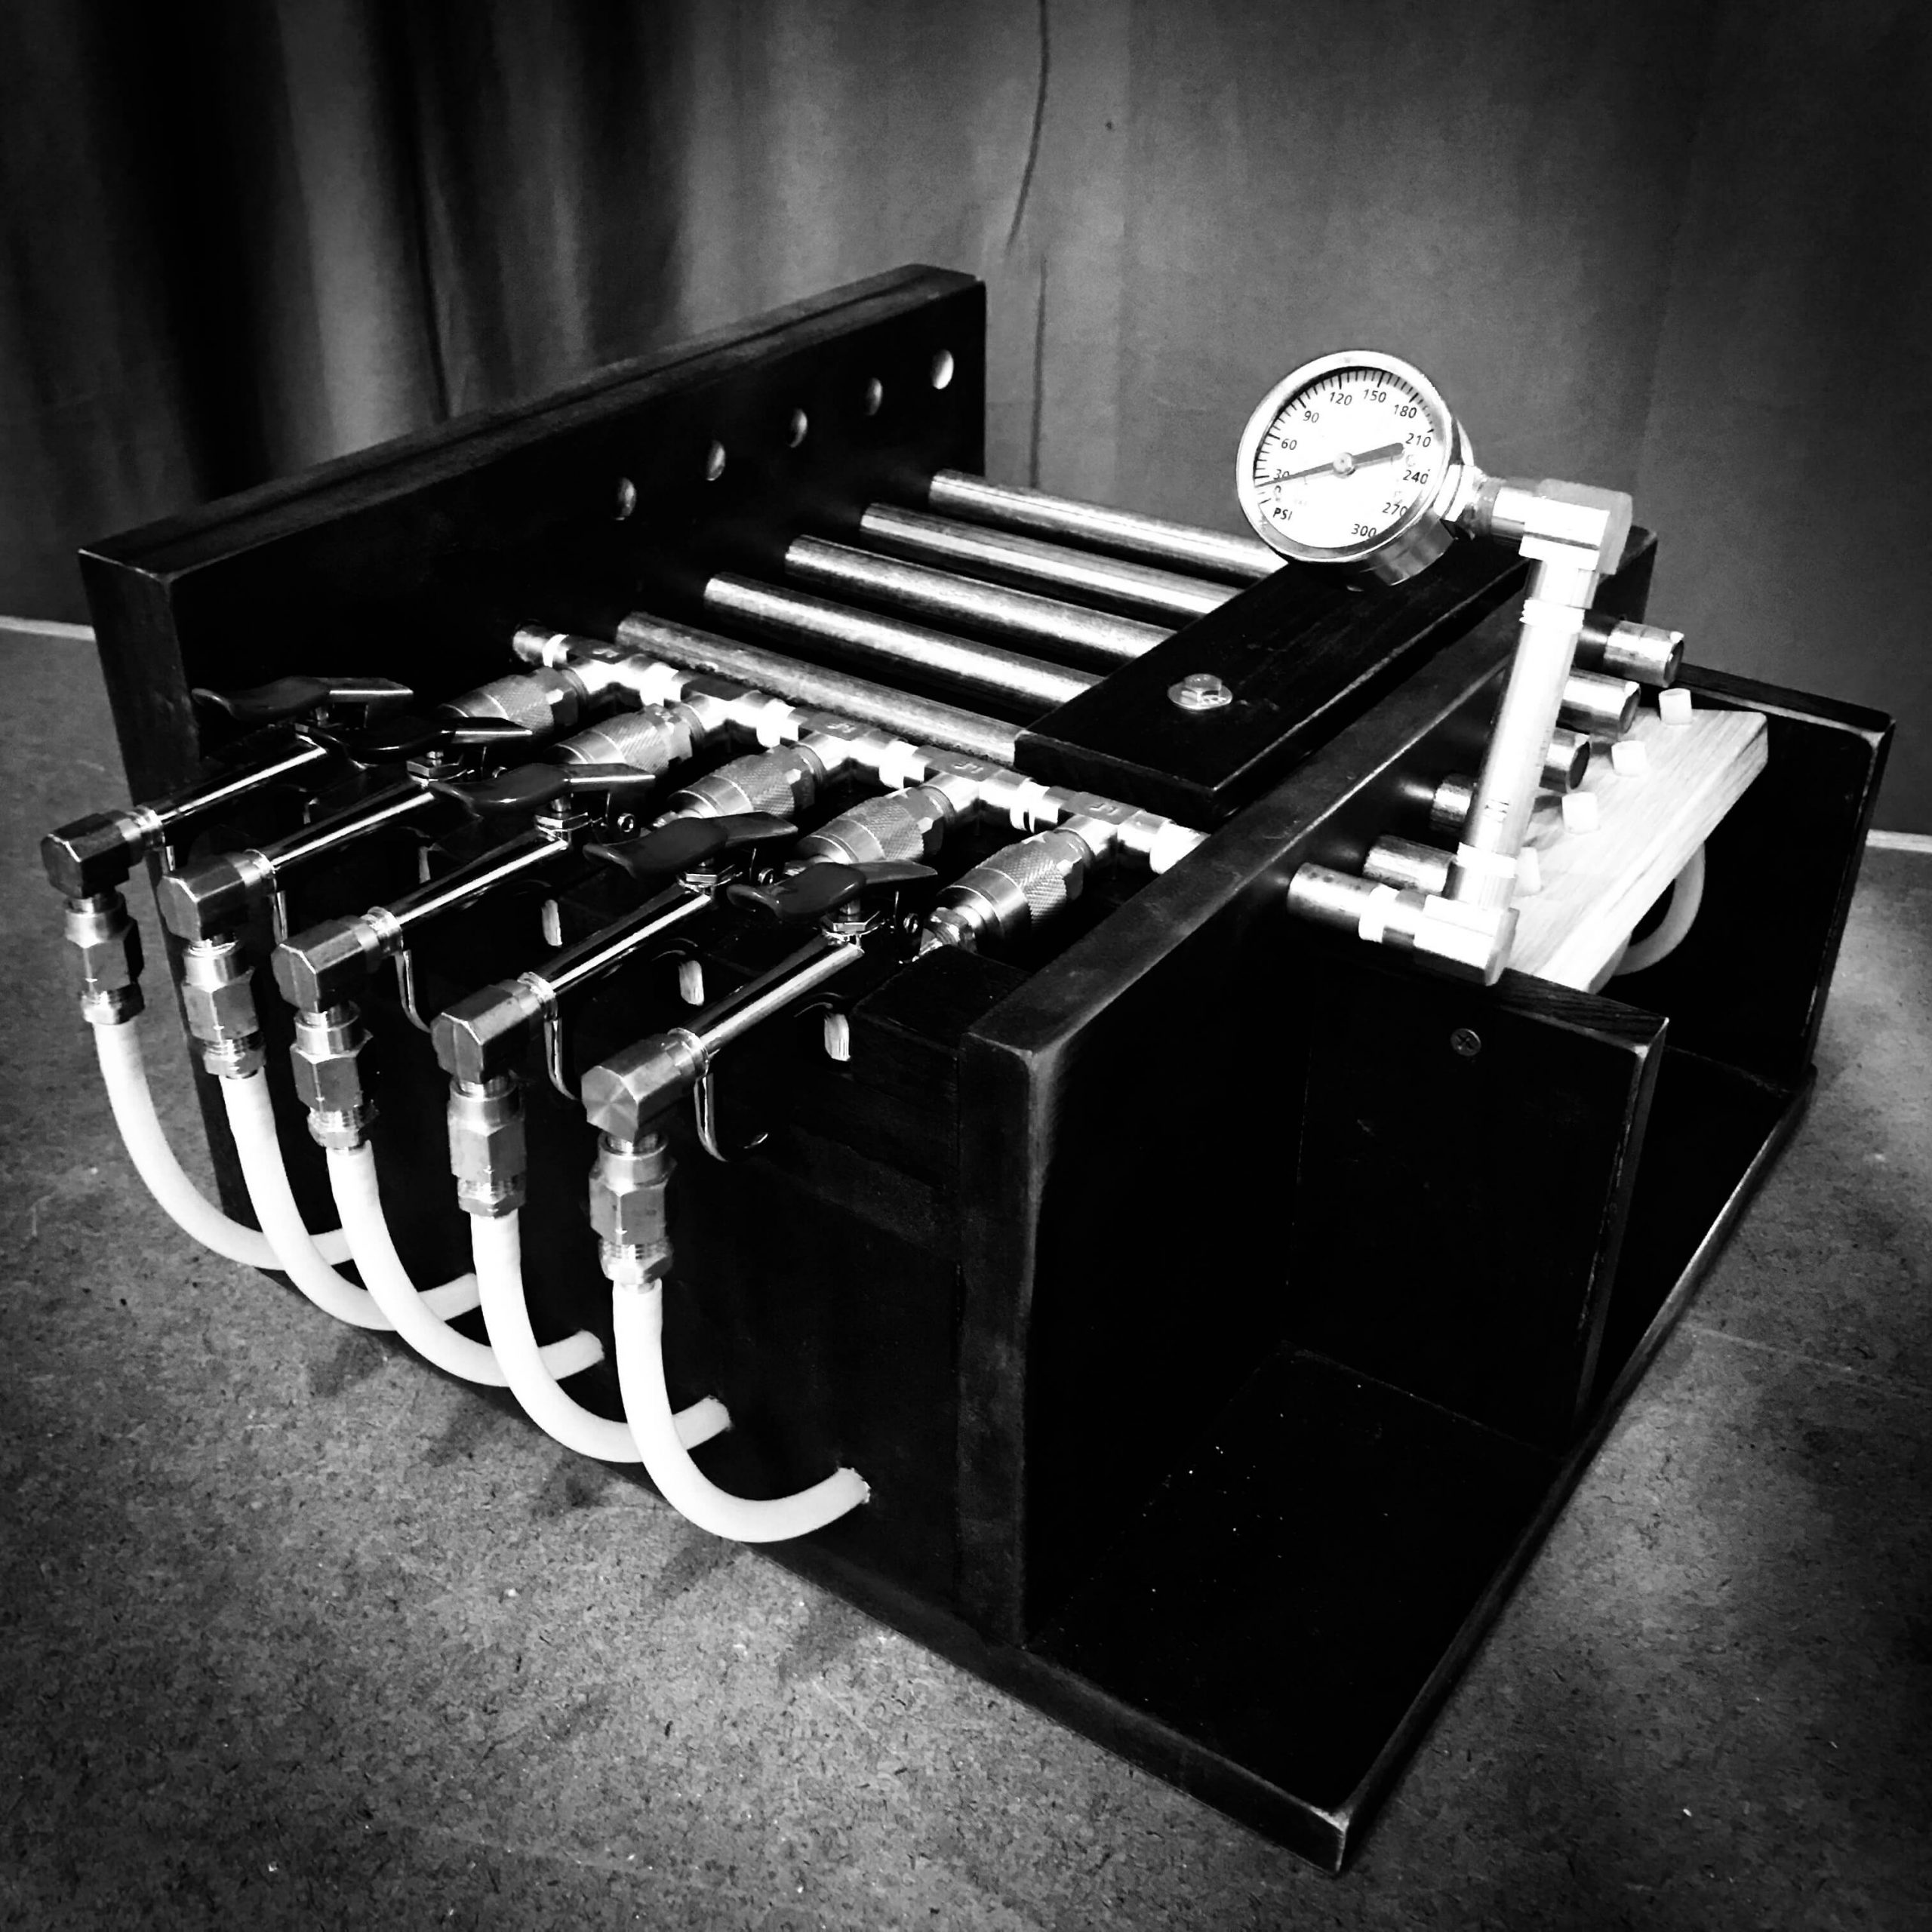 Powered Pan Pipe image in black and white